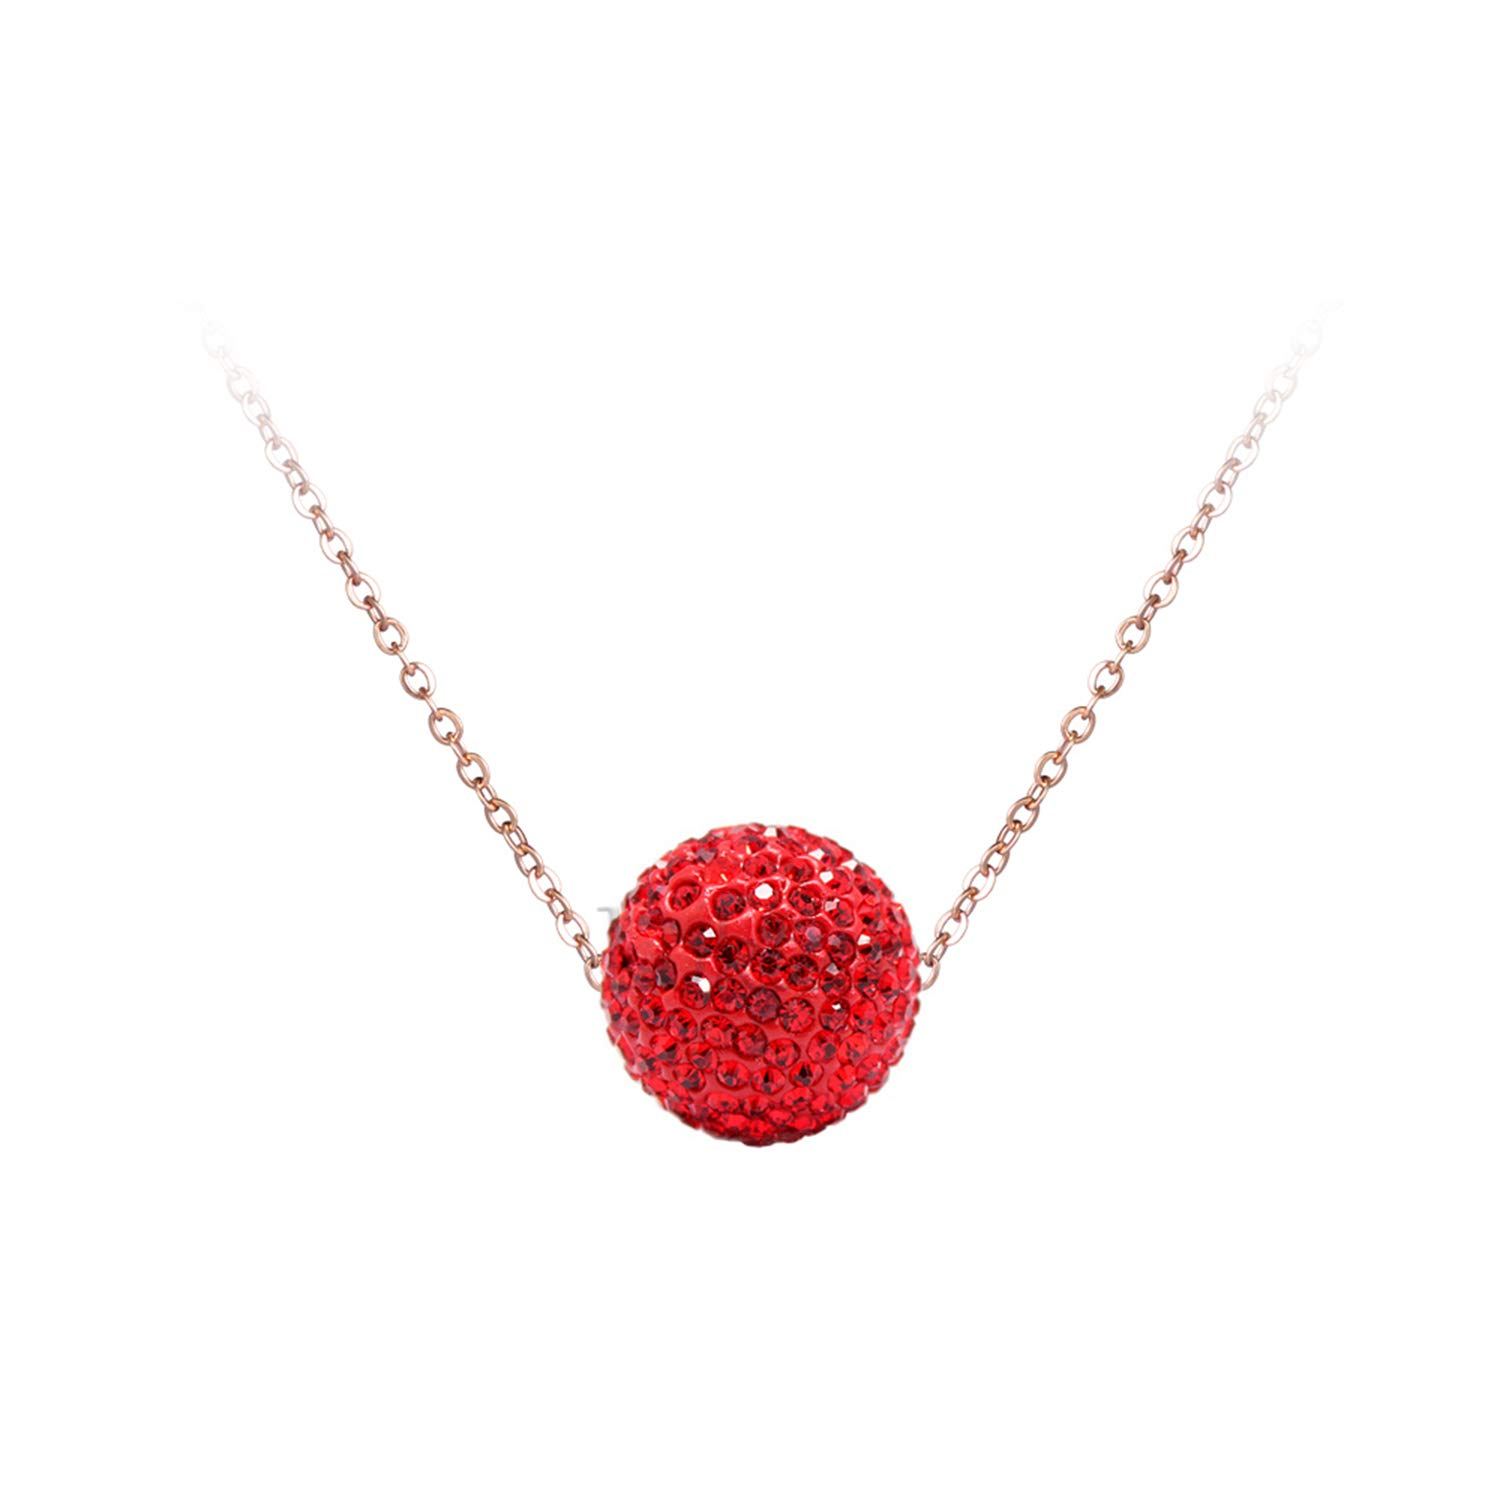 b5308c5de6 Amazon.com: Crystal Disco Ball Pendant Necklace Rose Gold Color Stainless  Steel Chain Link Necklaces Jewelry Rose Gold Chain Dark Blue: Jewelry